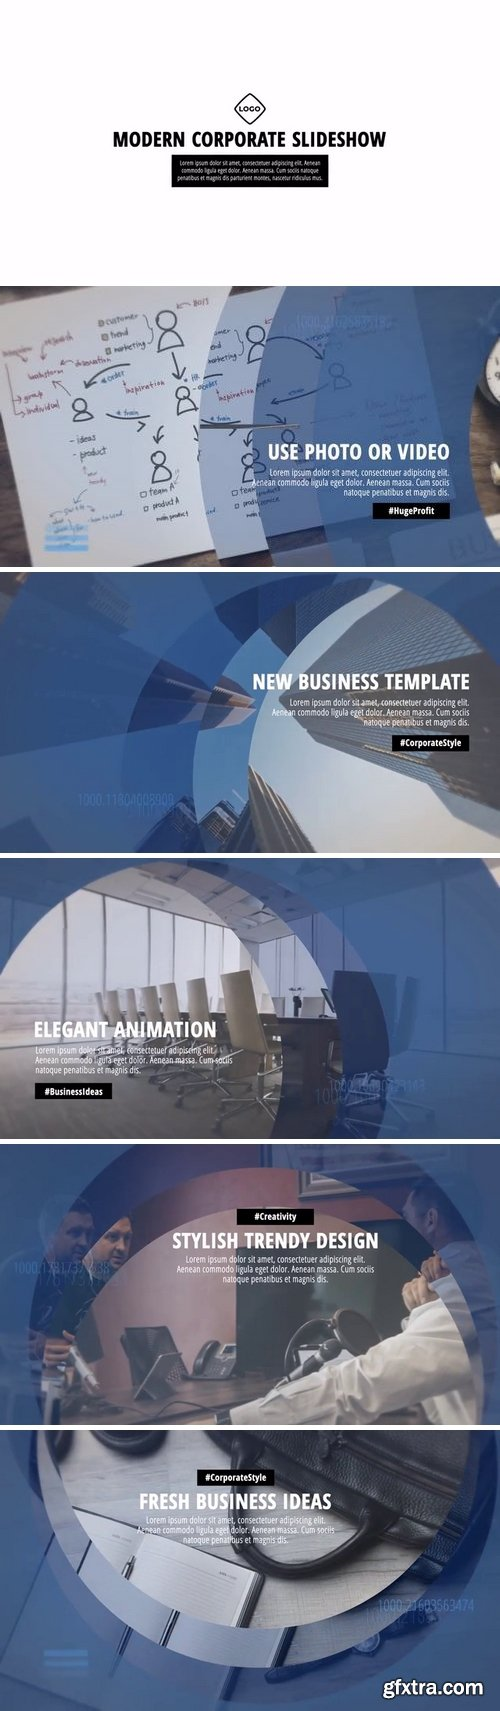 MotionArray - Modern Corporate Slideshow After Effects Templates 160135